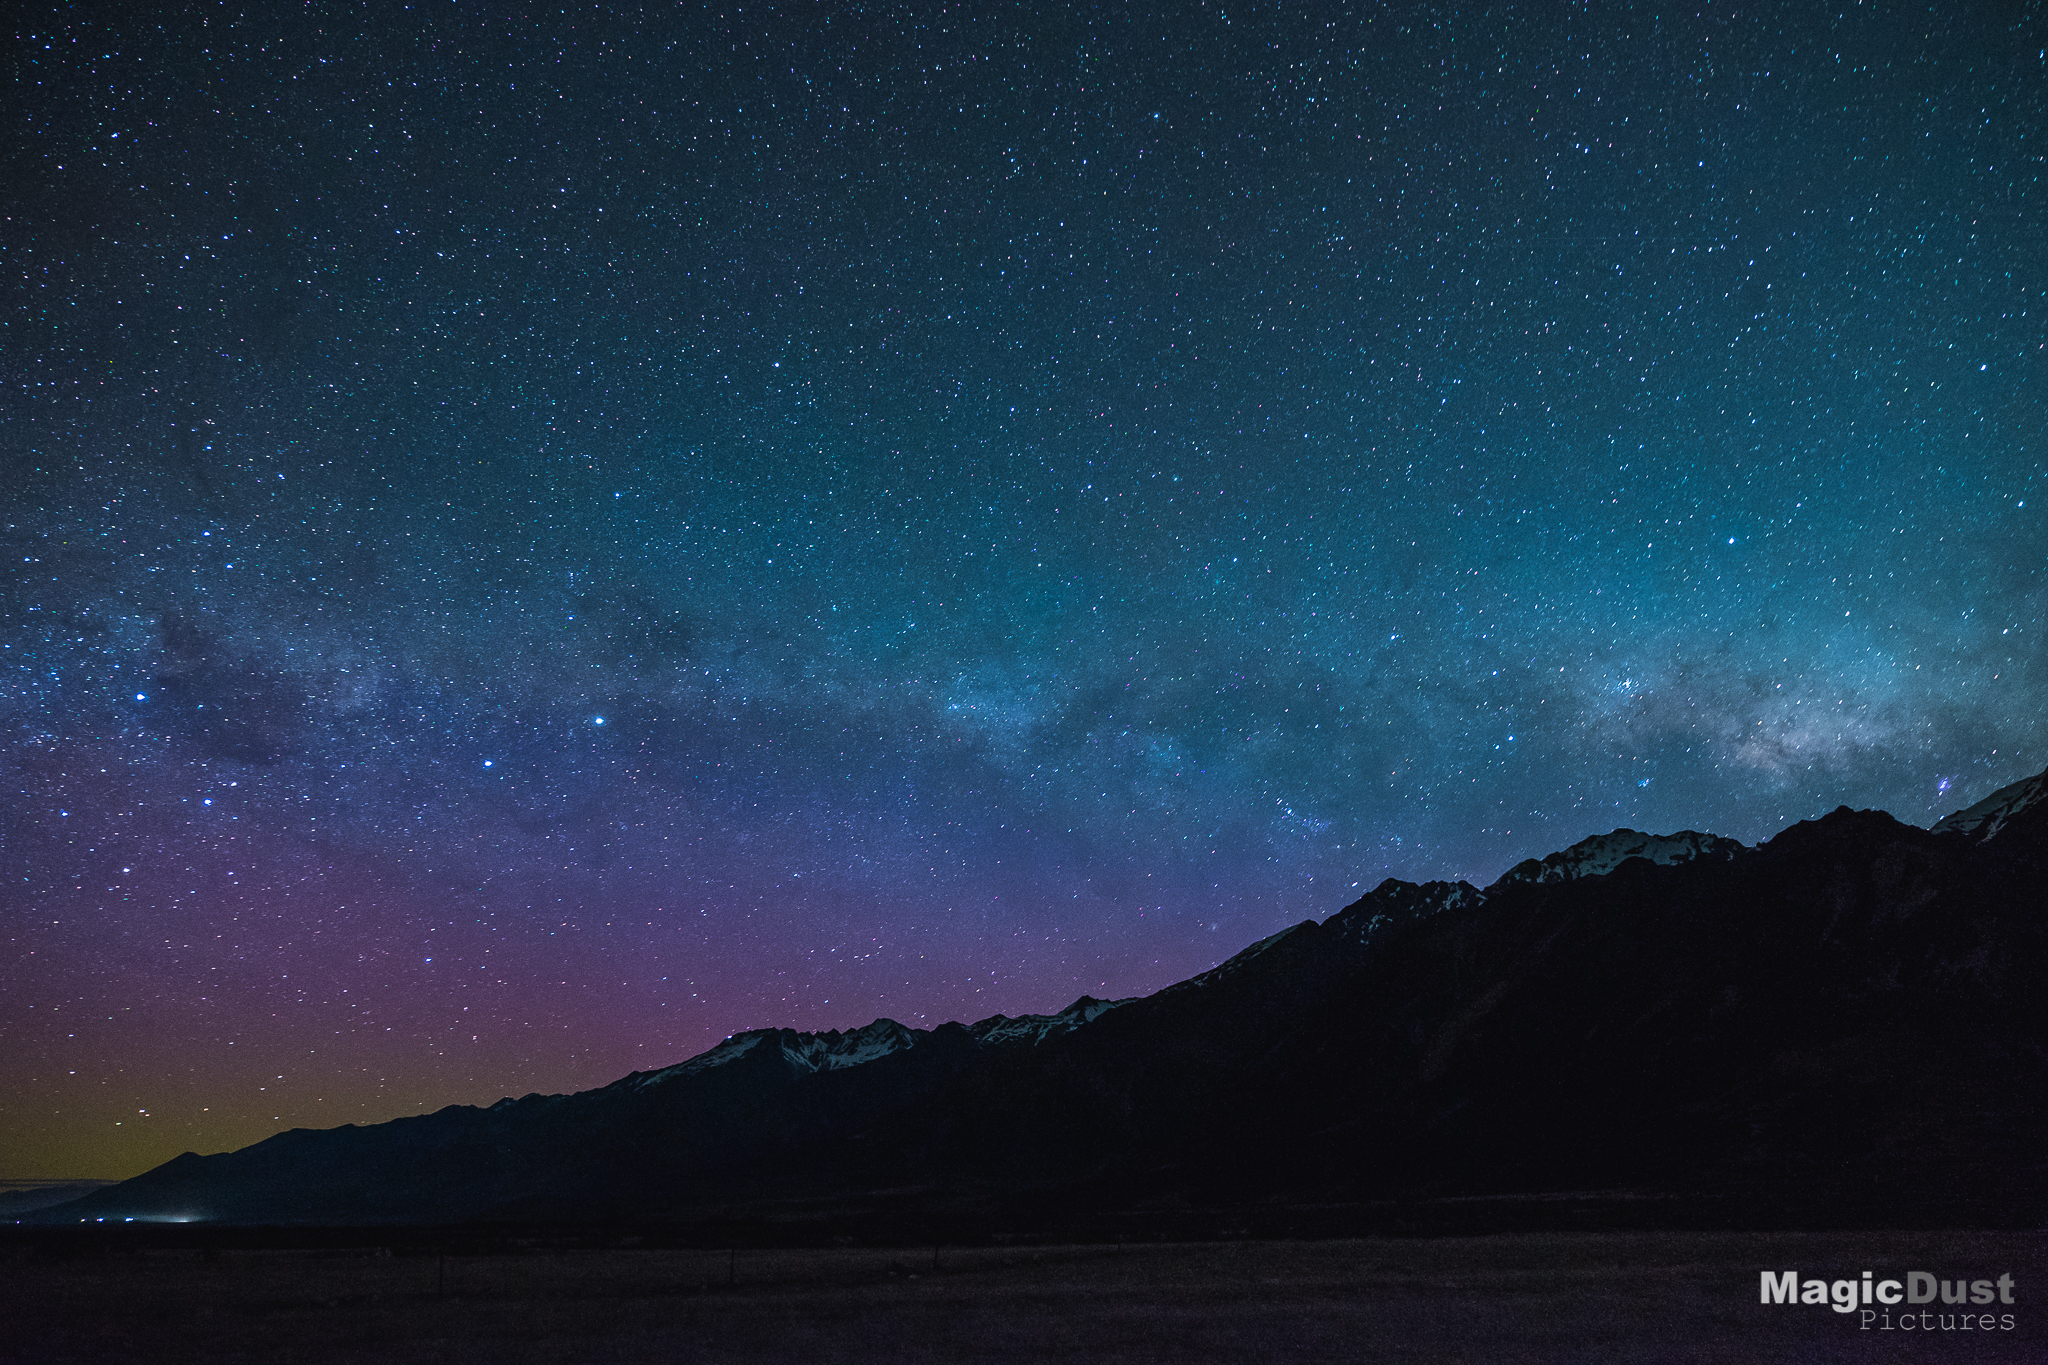 The galactic centre of the Milky Way setting behind the mountains at Mount Cook Village